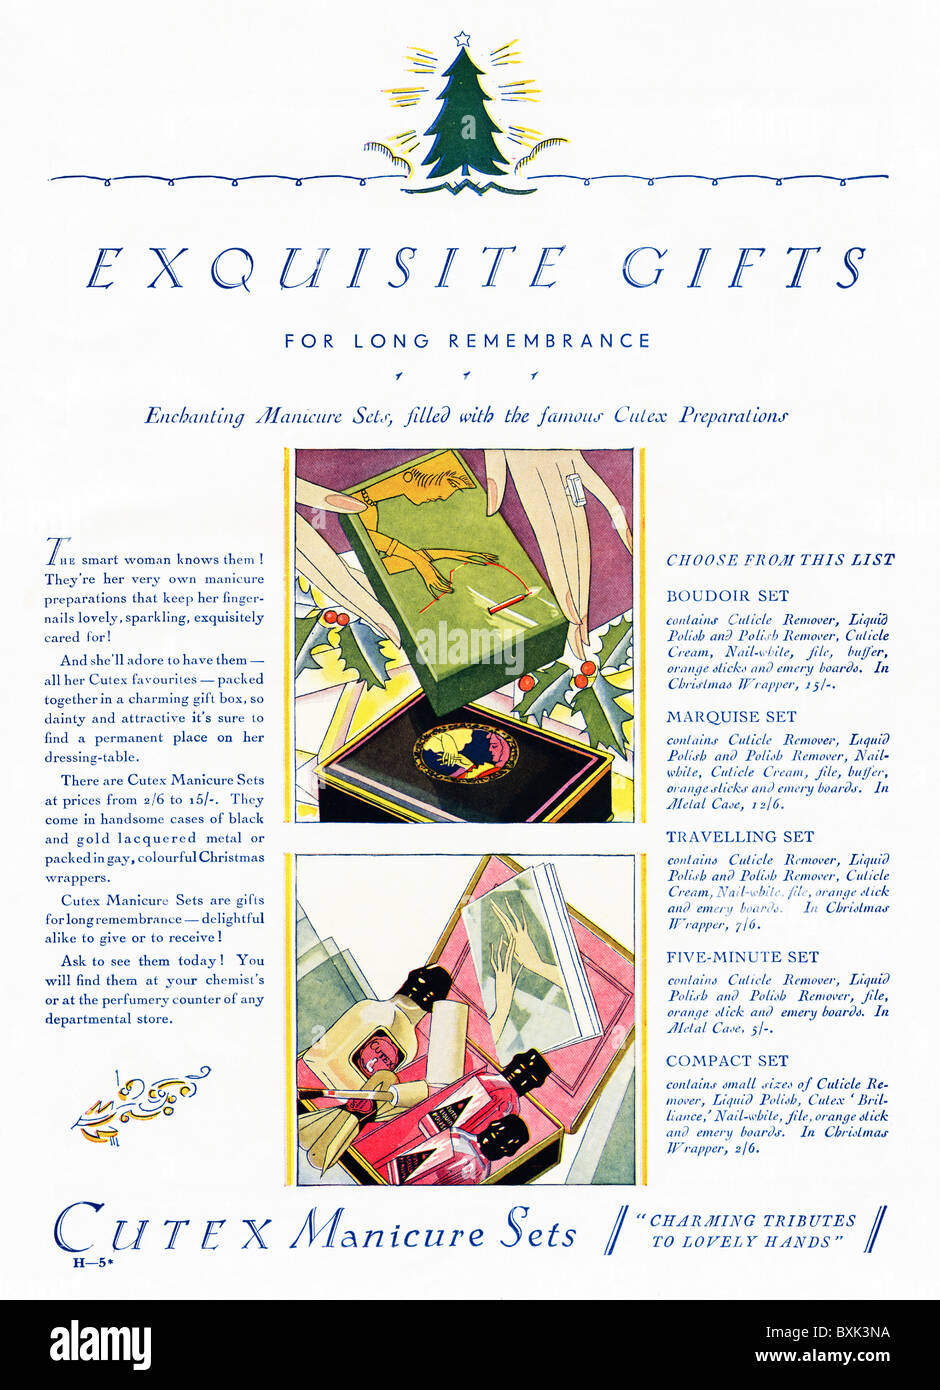 Full page advert for Cutex Manicure Sets in women's magazine circa 1929 - Stock Image